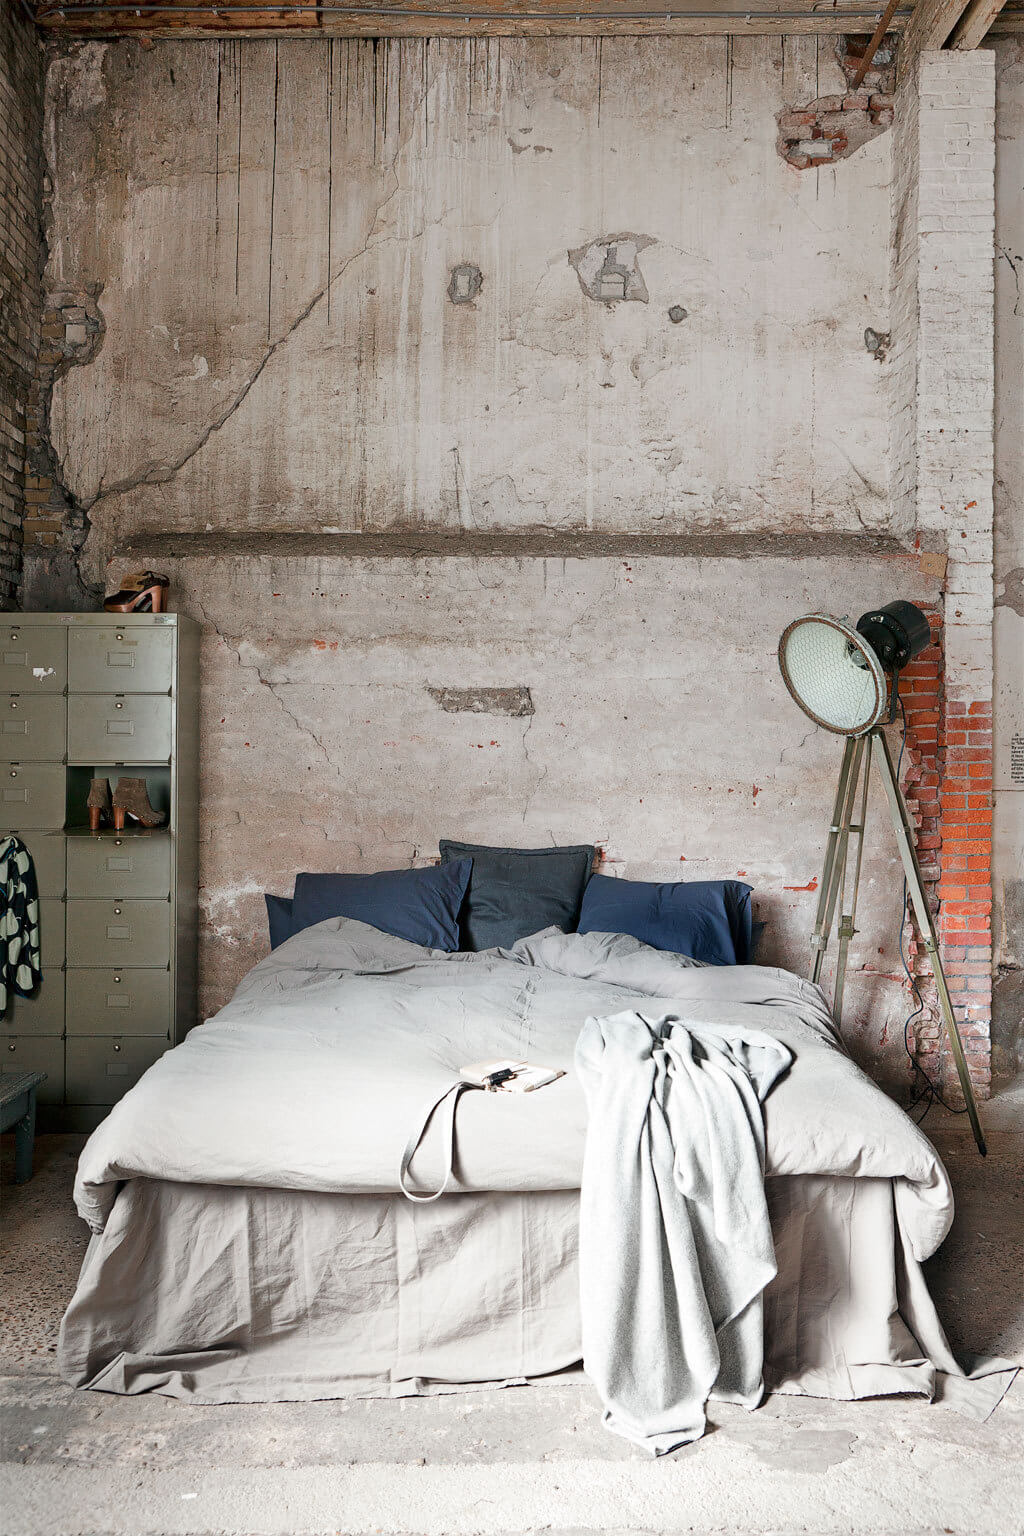 7 industrial chic bedroom design ideas to inspire for Bedroom ideas industrial